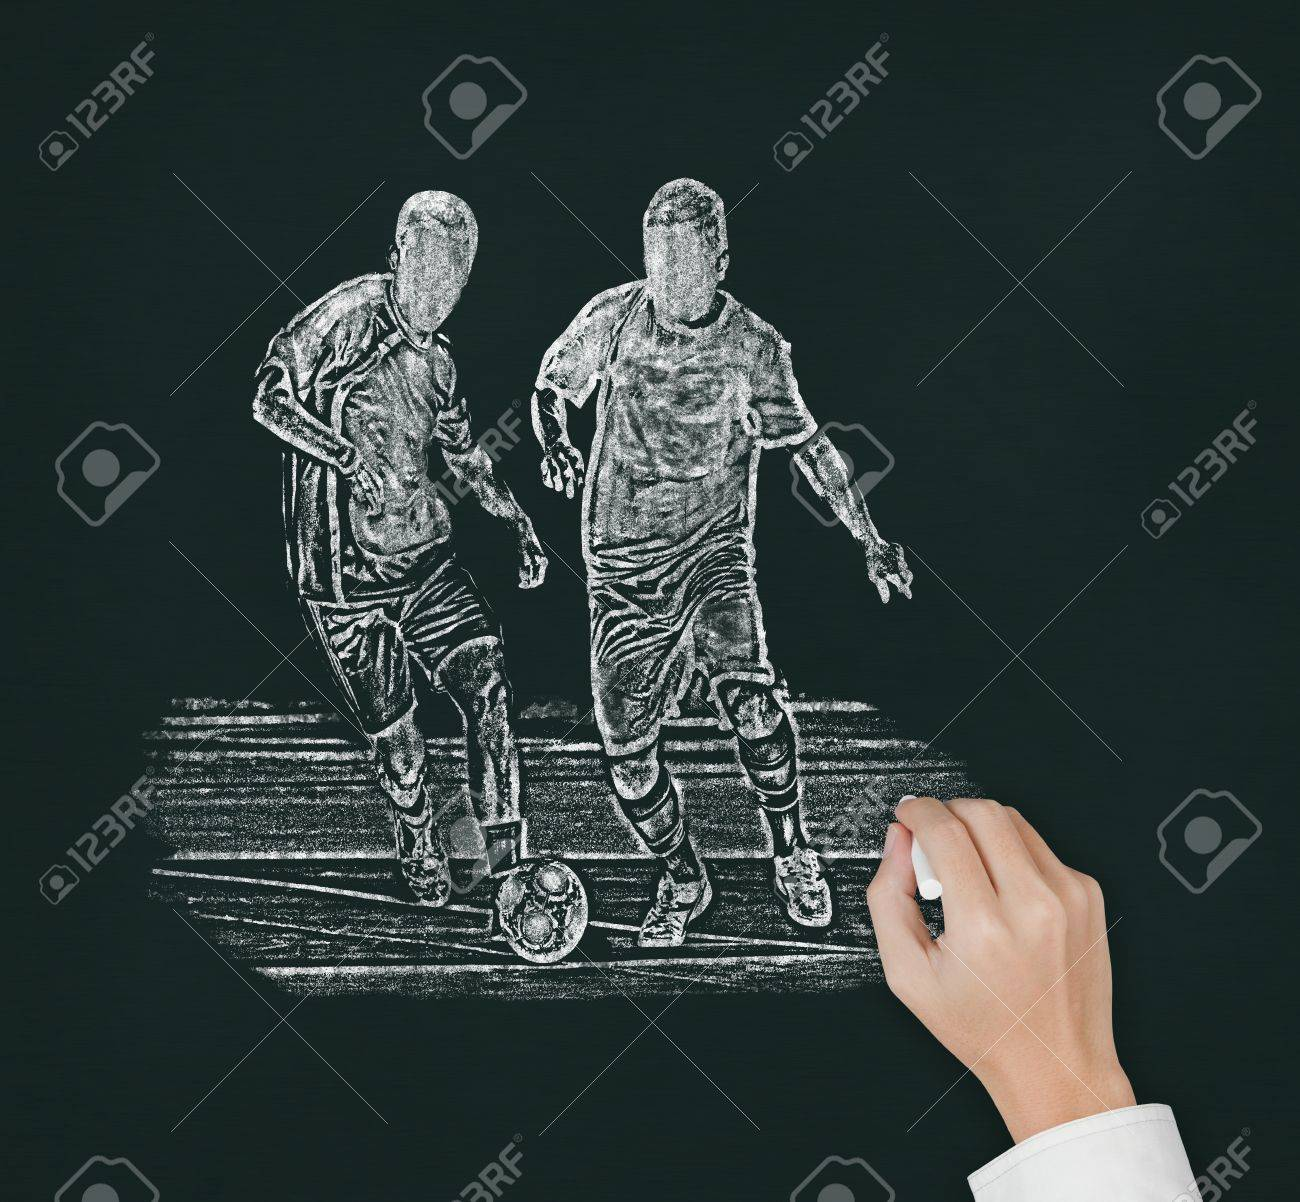 Soccer Coach Hand Drawing Two Player Catching The Ball